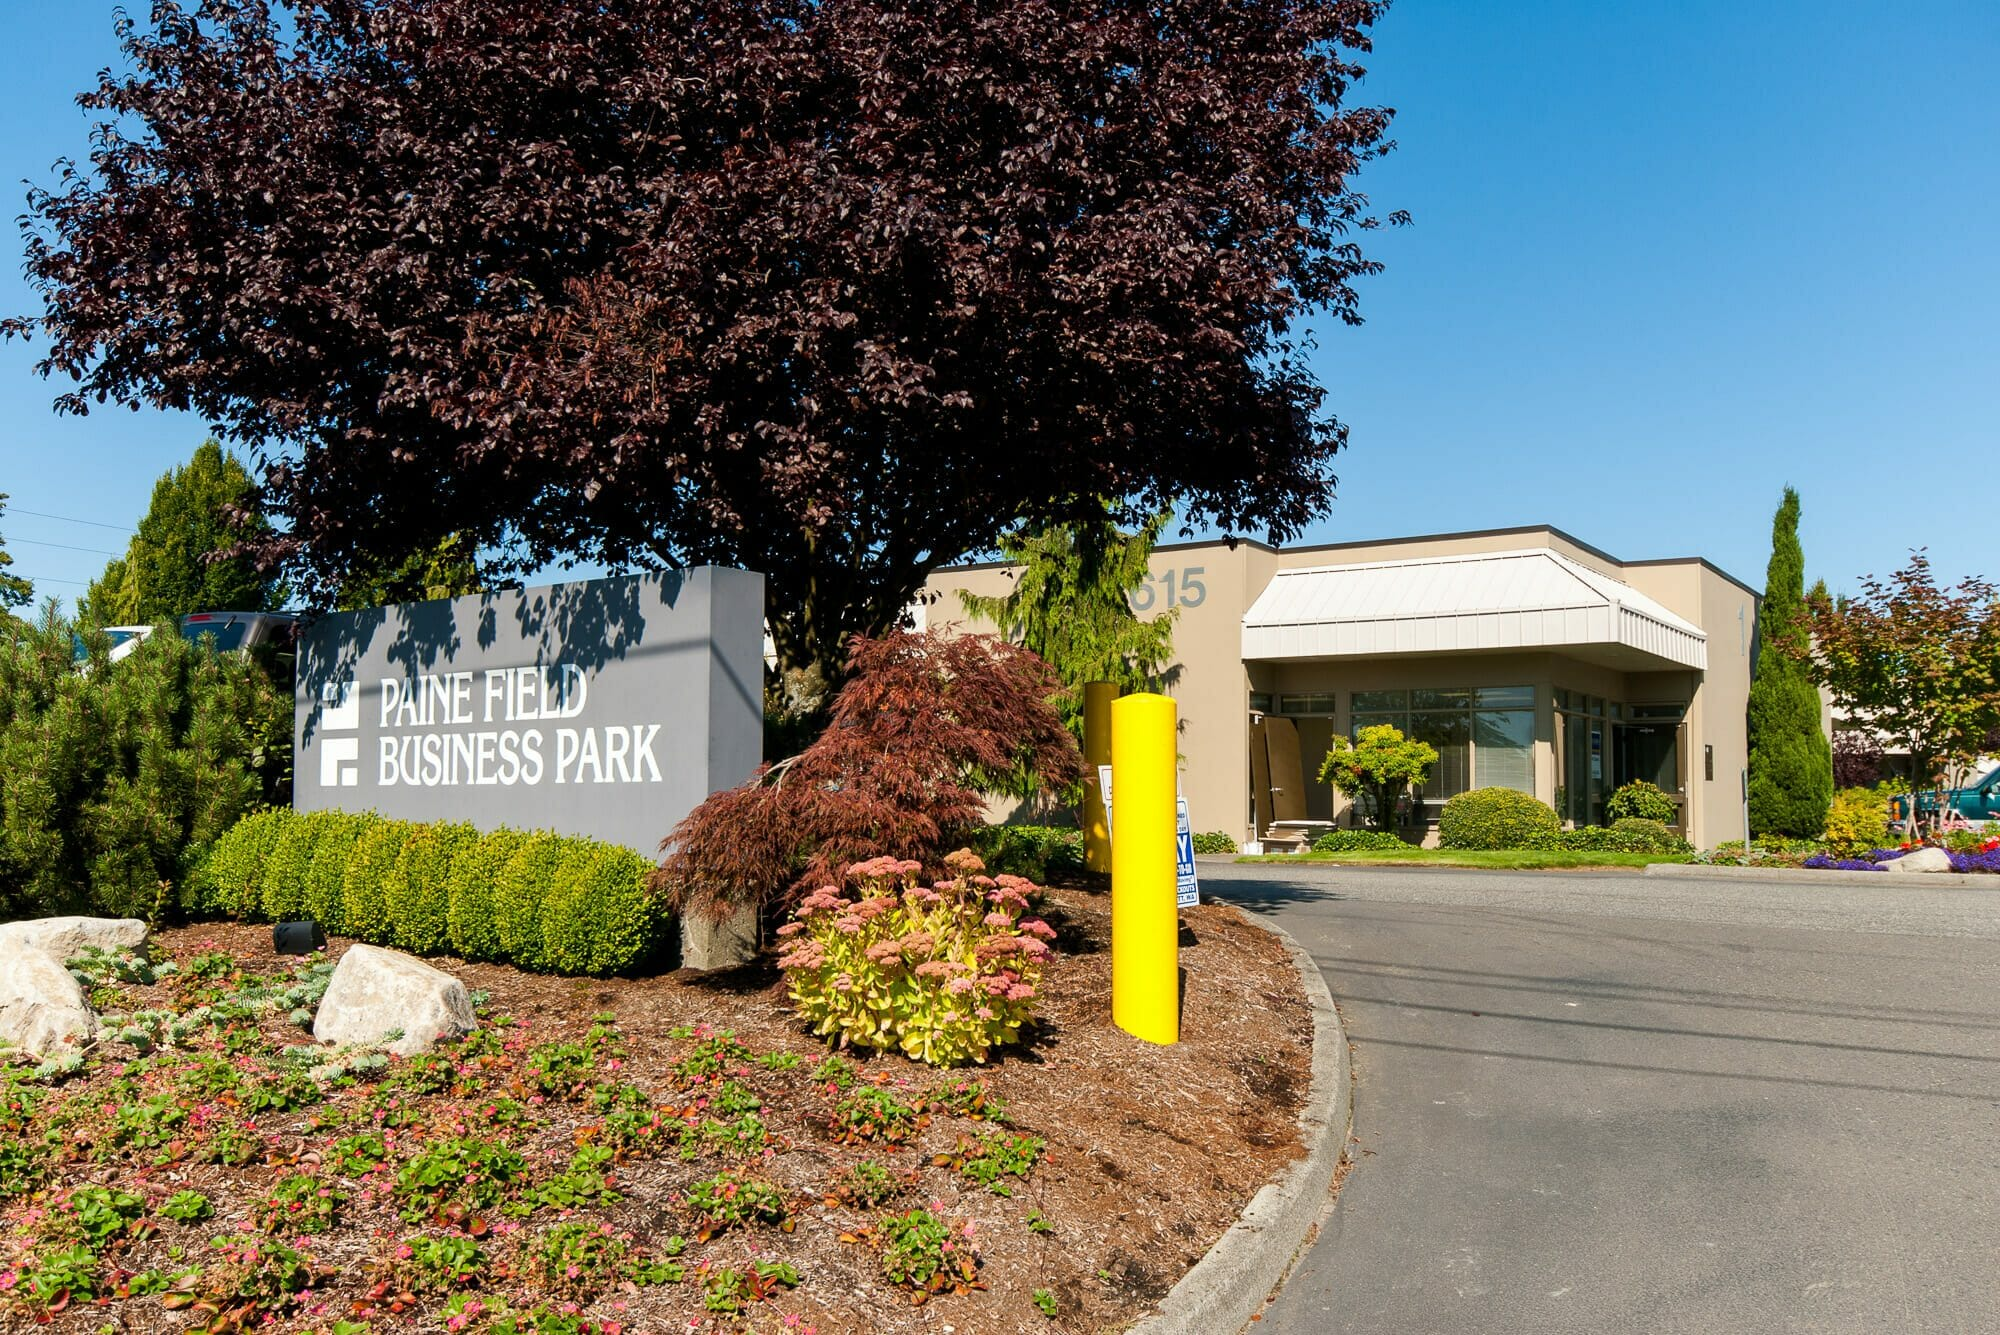 Exterior of Paine Field Business Park with monument sign